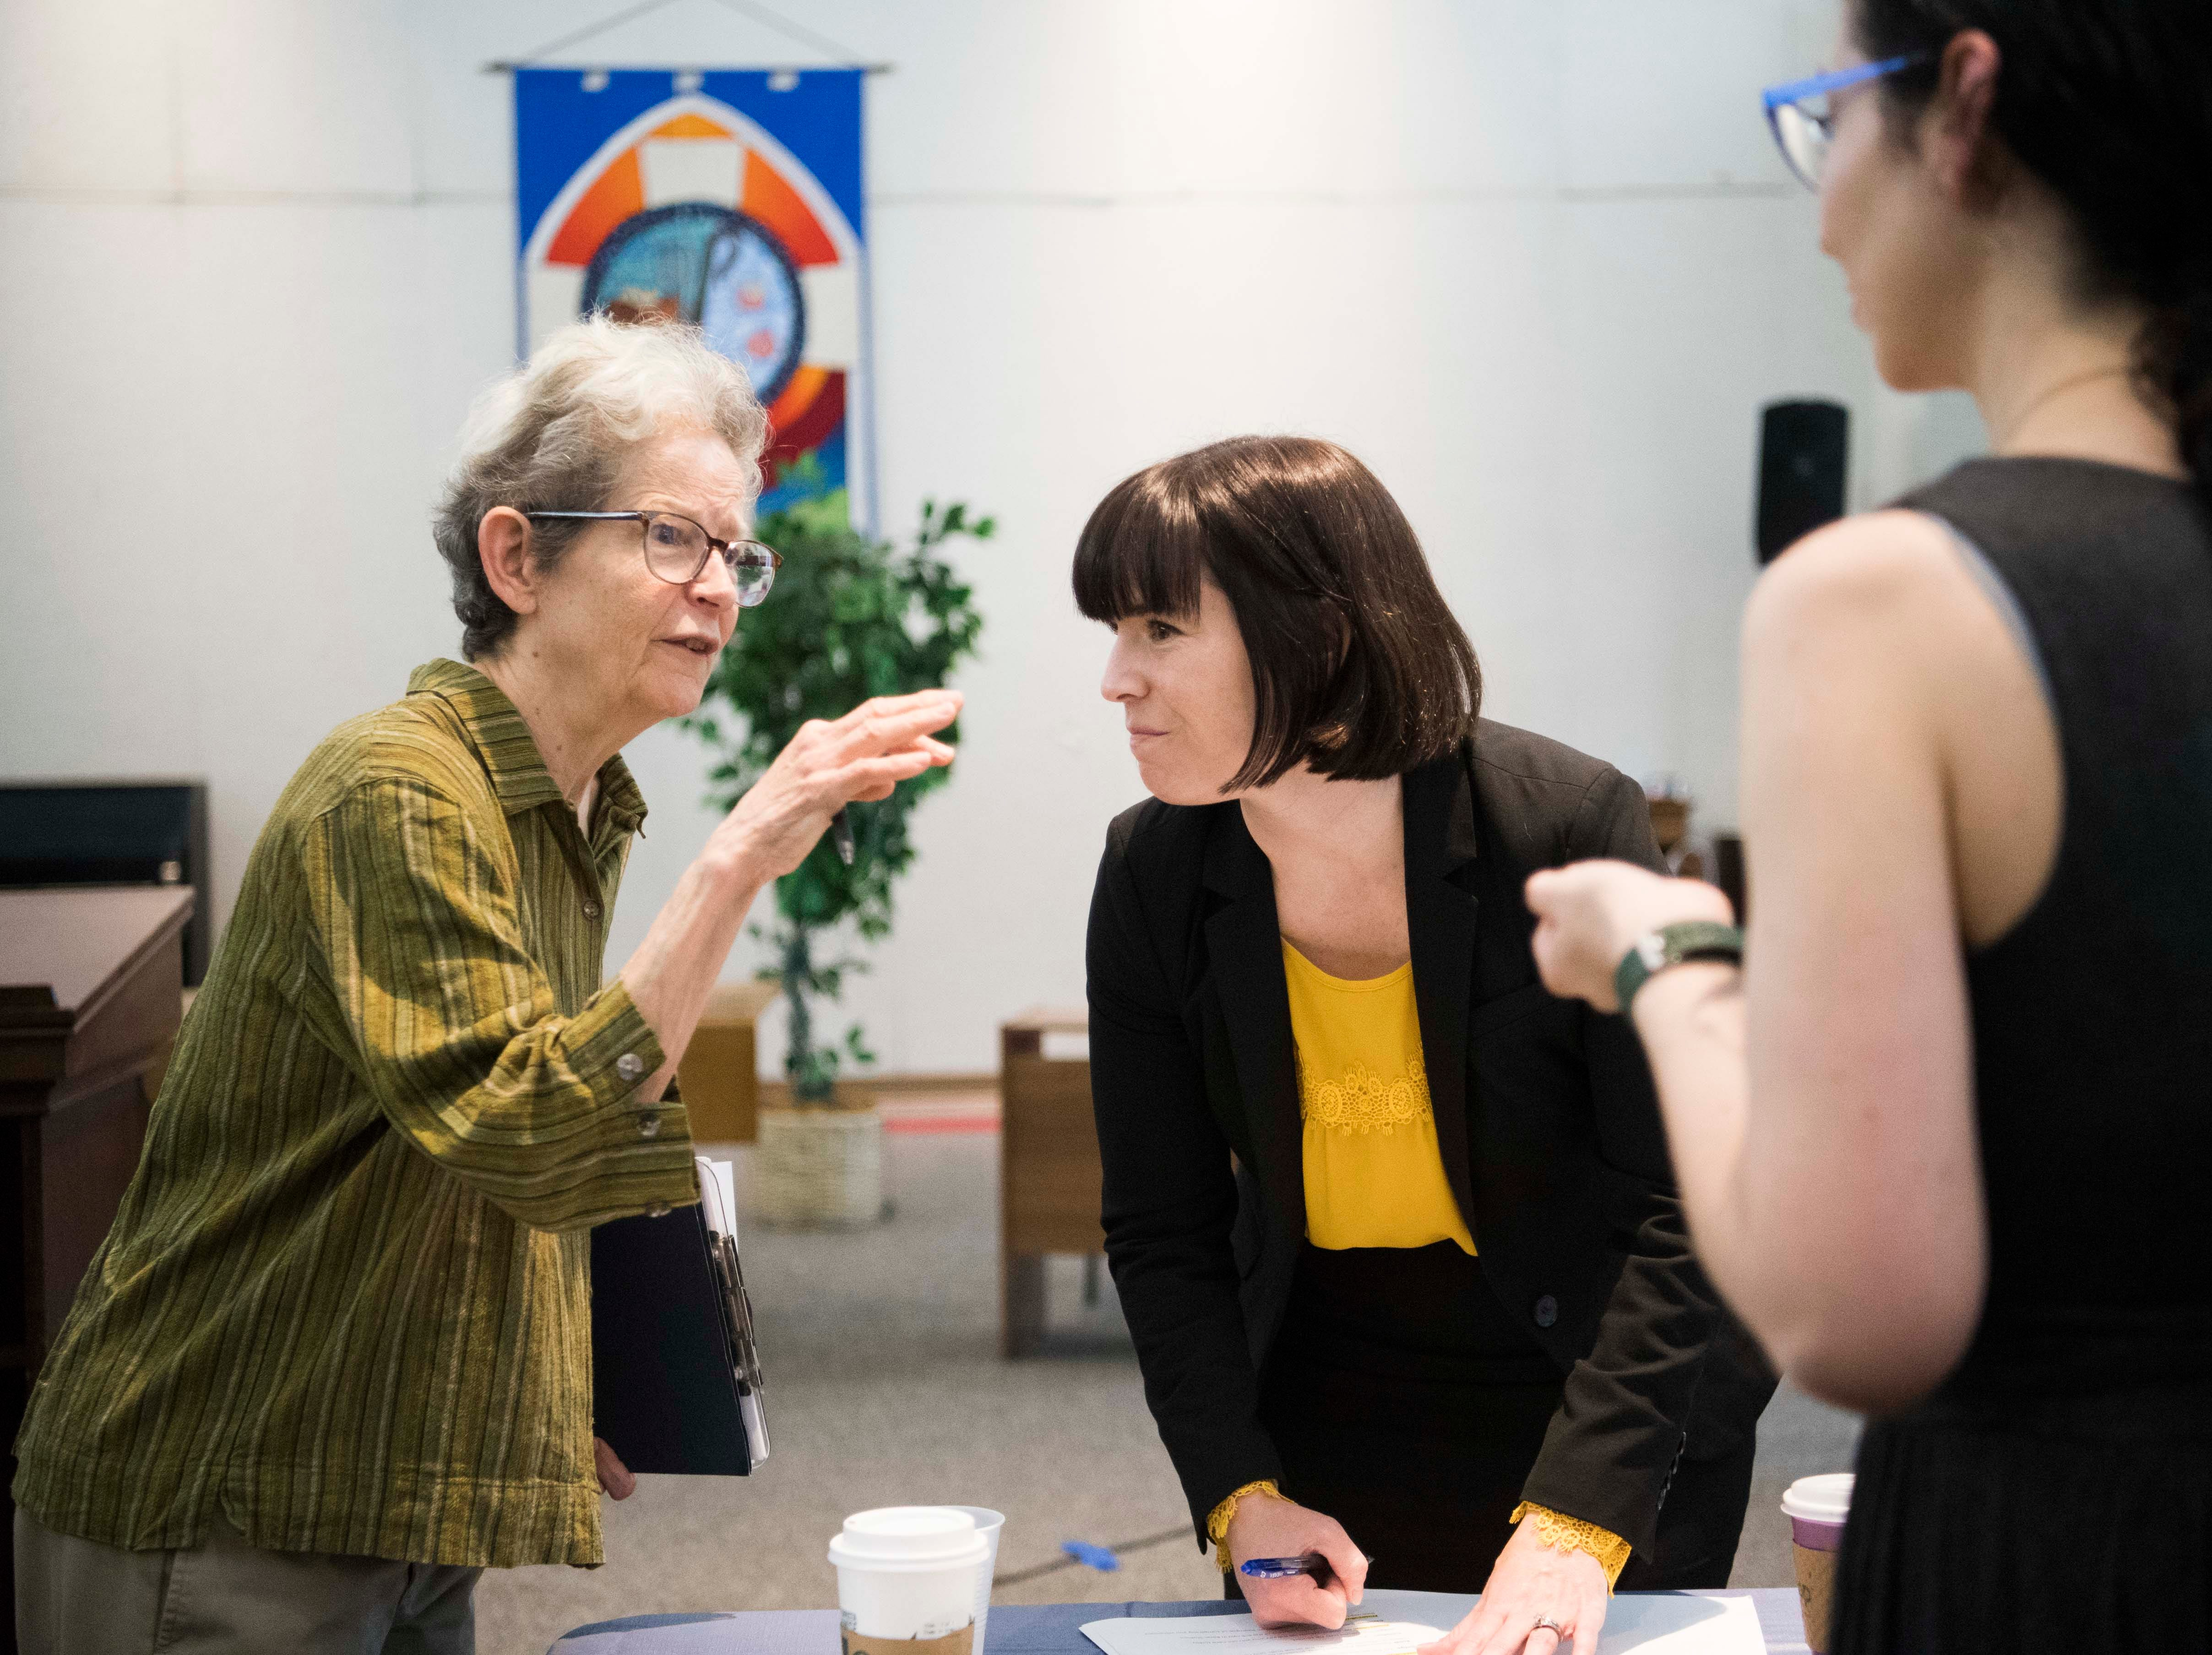 At left Fran Ansley speaks with Christine Ball-Blakely before a mock trial put on by Allies of Knoxville's Immigrant Neighbors, AKIN, at St. James Episcopal Church of Knoxville in Knoxville, Saturday, May 11, 2019. The court was part of the group's efforts to raise awareness about the negative effects of Knox County's 287(g) program, the only program of its kind in the state, which trains local officers to enforce federal immigration laws.